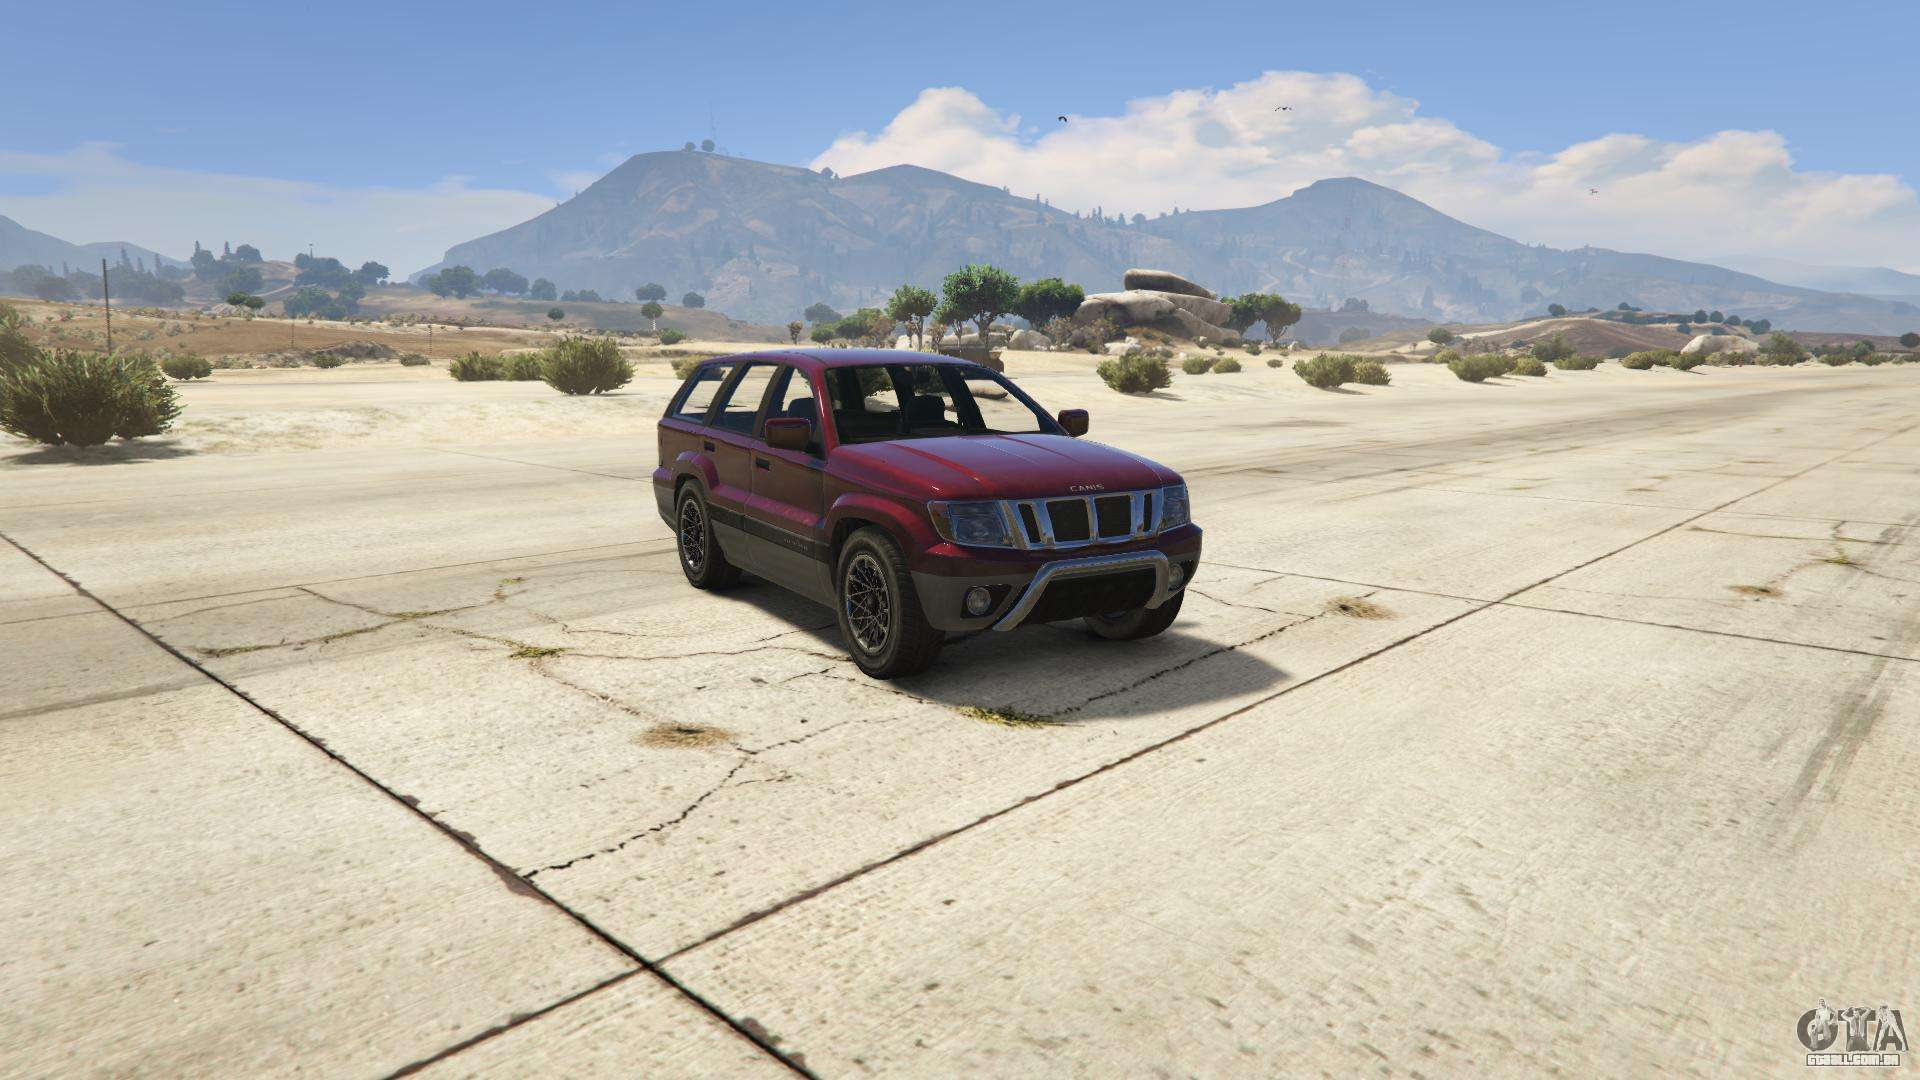 GTA 5 Canis Seminole - vista frontal